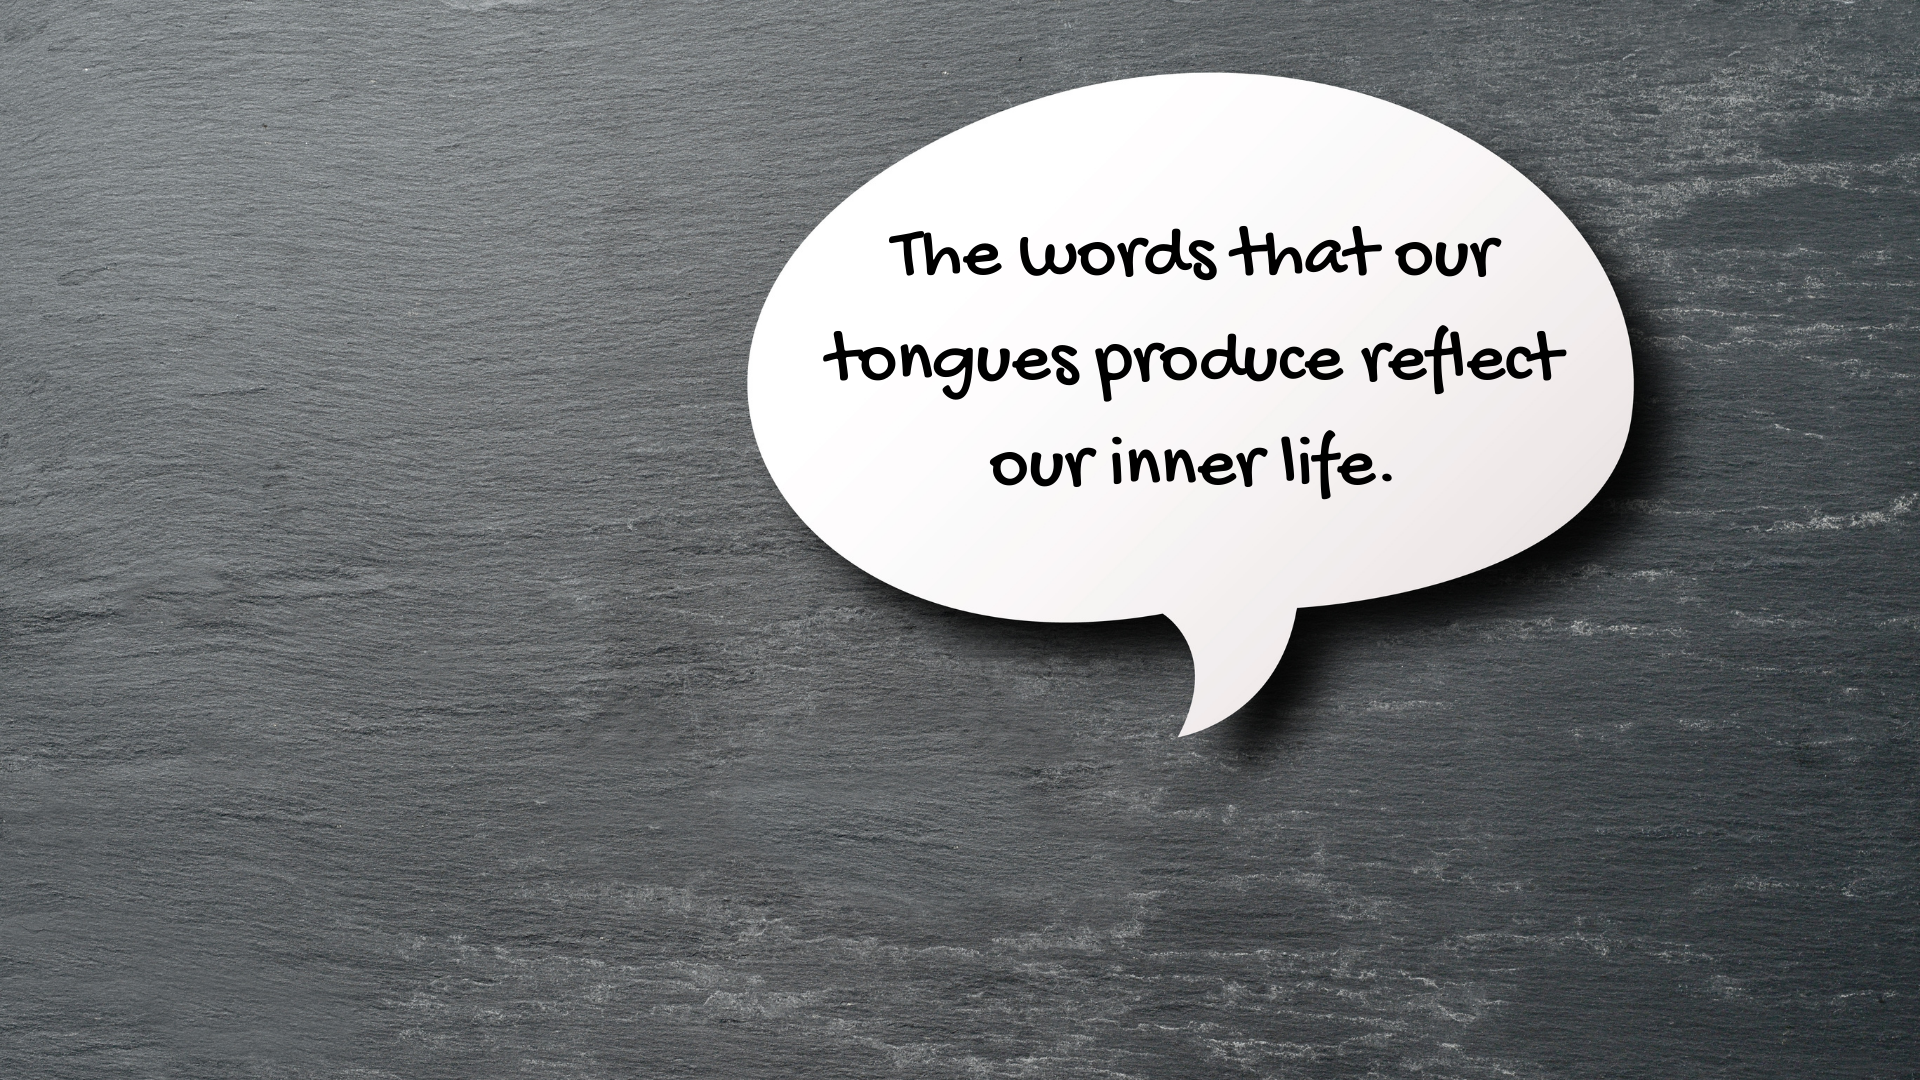 Our words reflect our inner life.